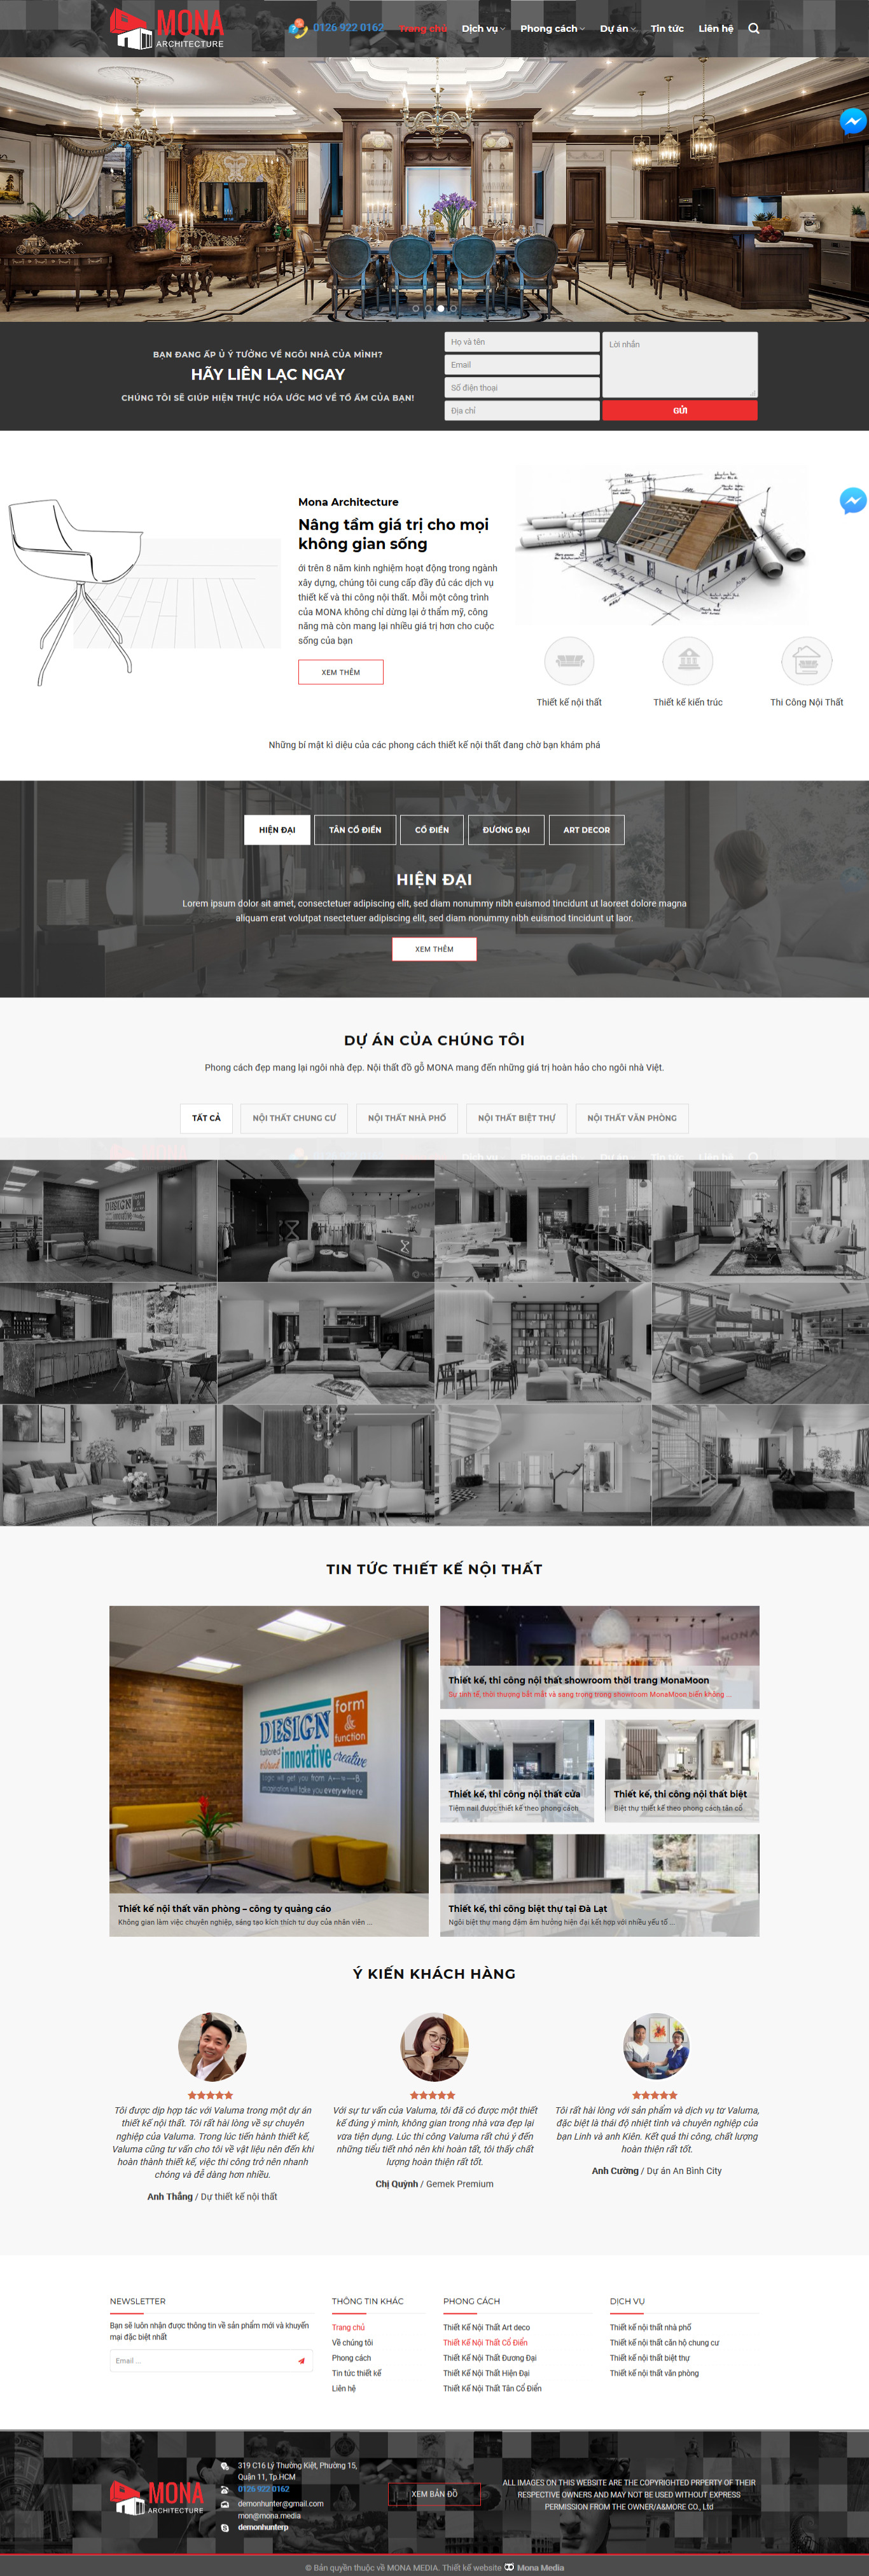 Mẫu website thiết kế nội thất giống amore-architecture